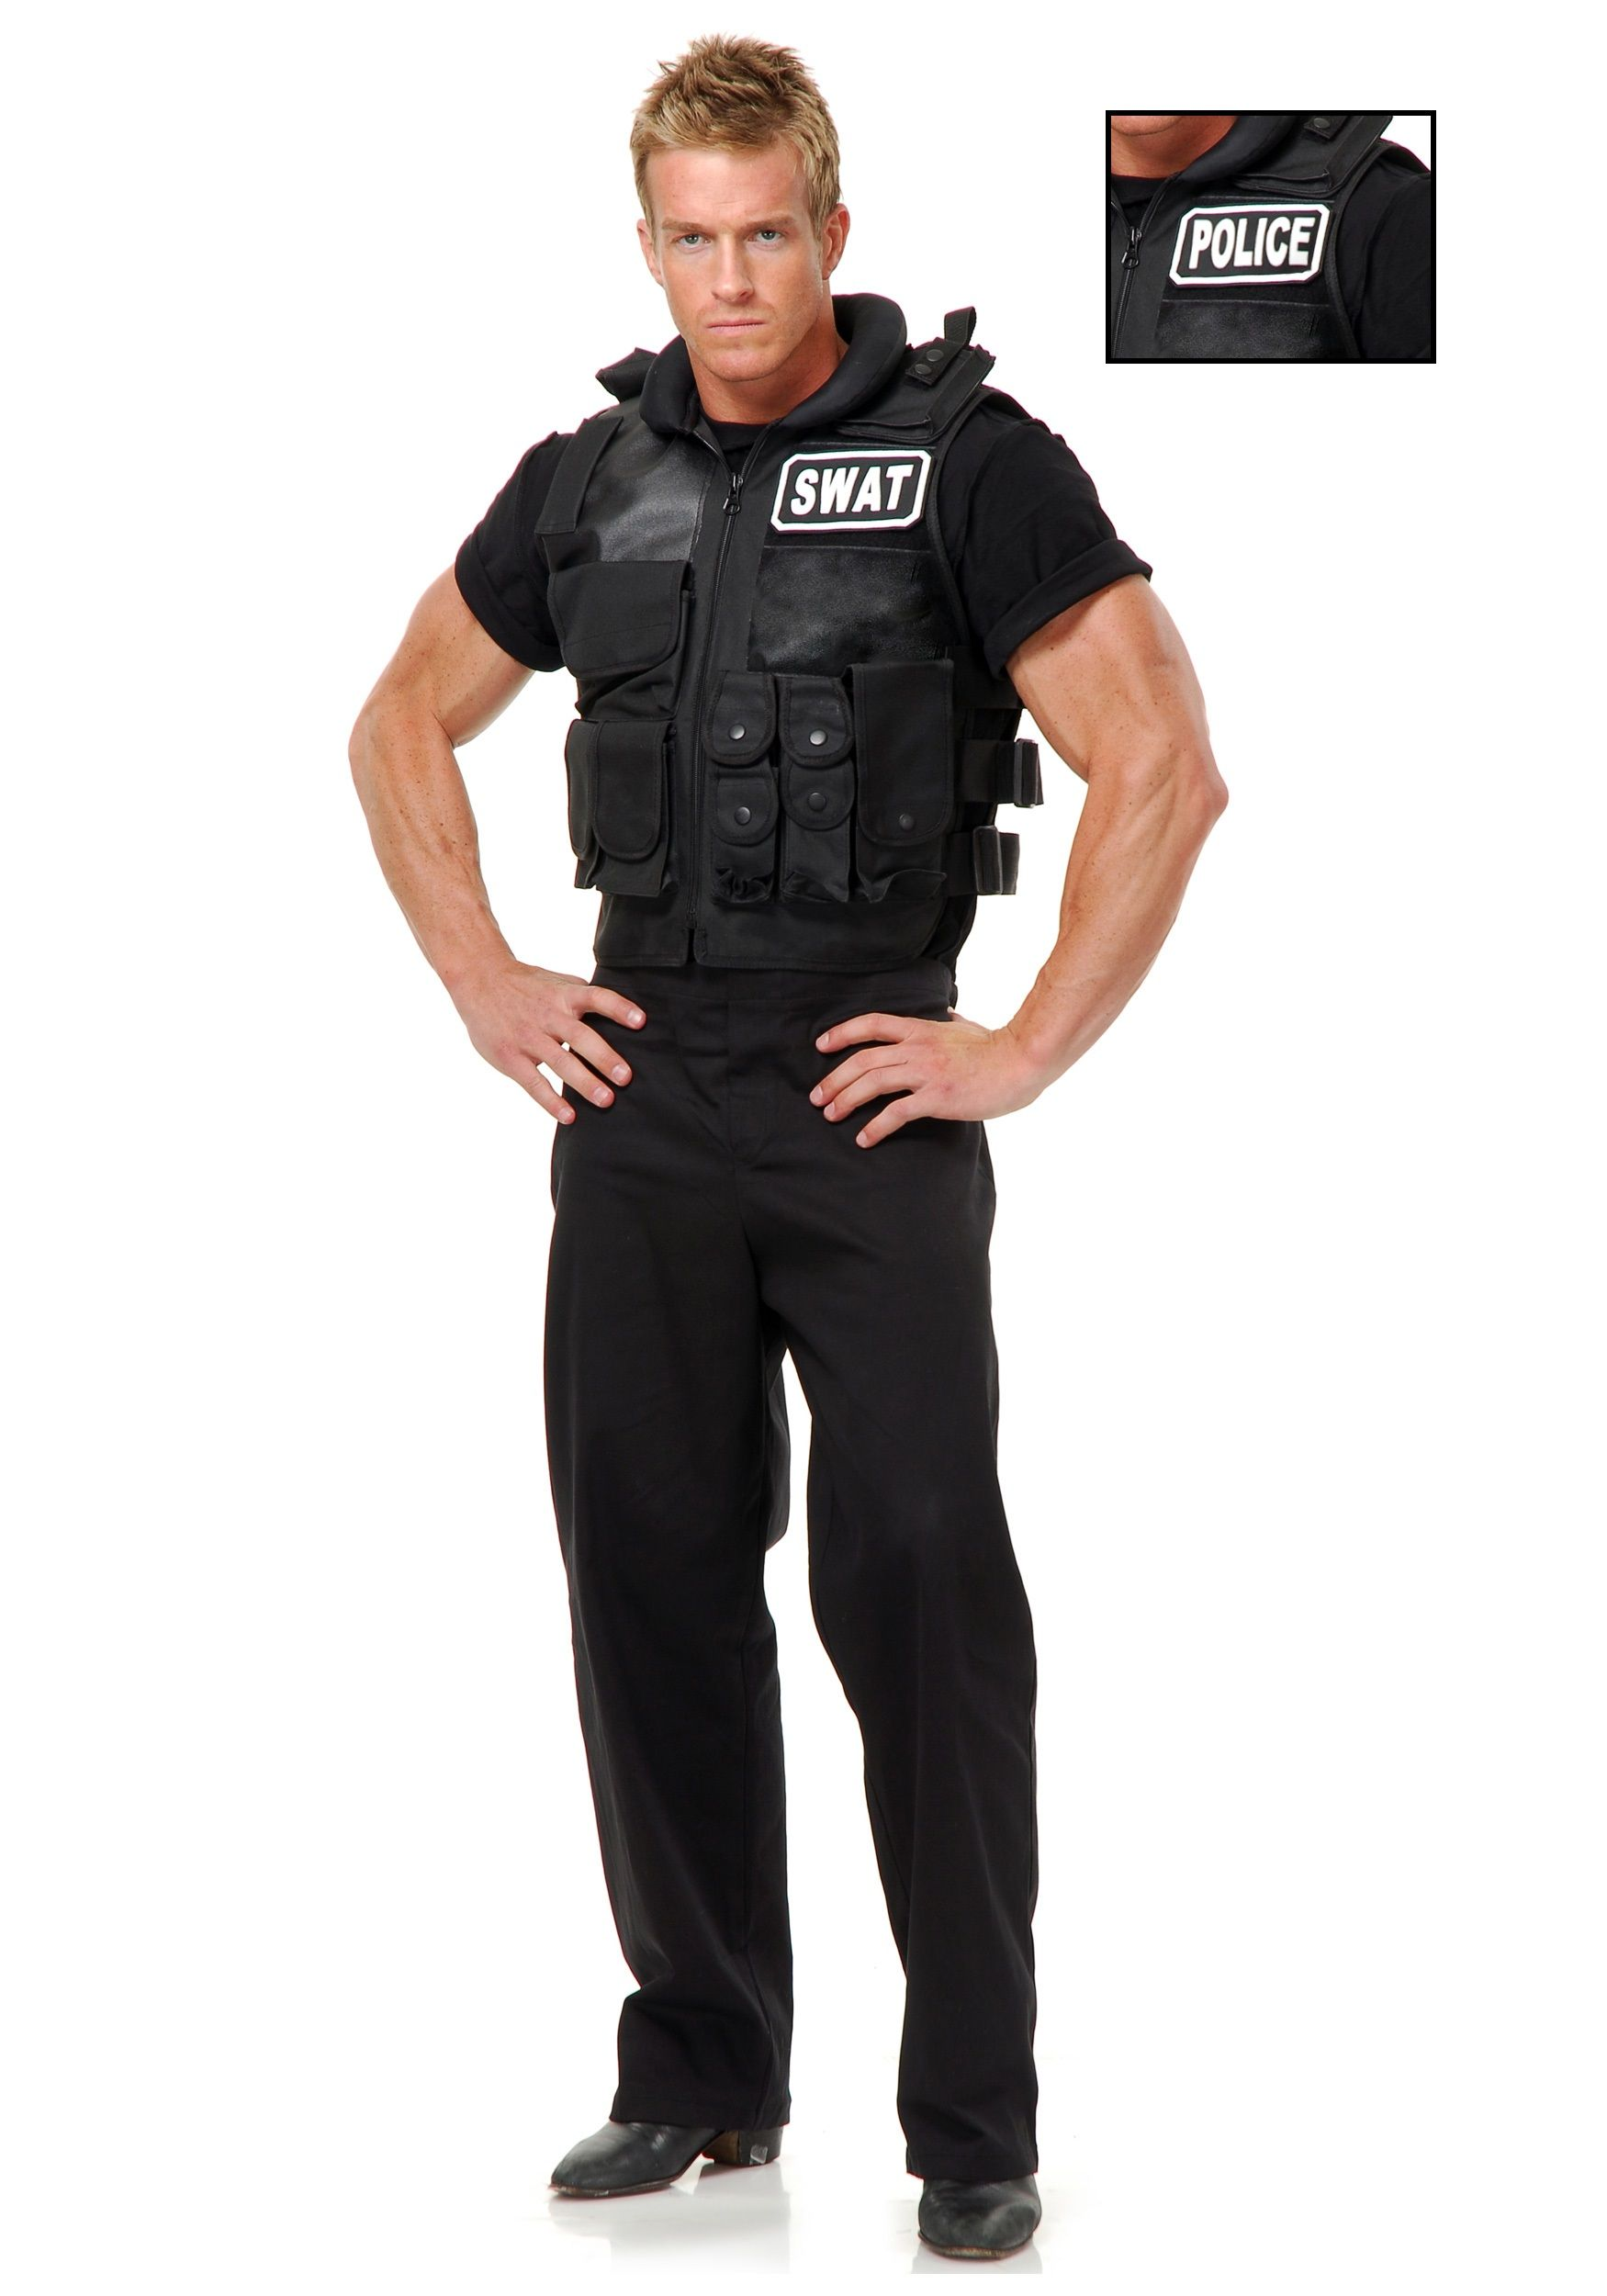 halloween costumes everyone knows when the swat team comes in they mean business lay the law - Swat Costumes For Halloween